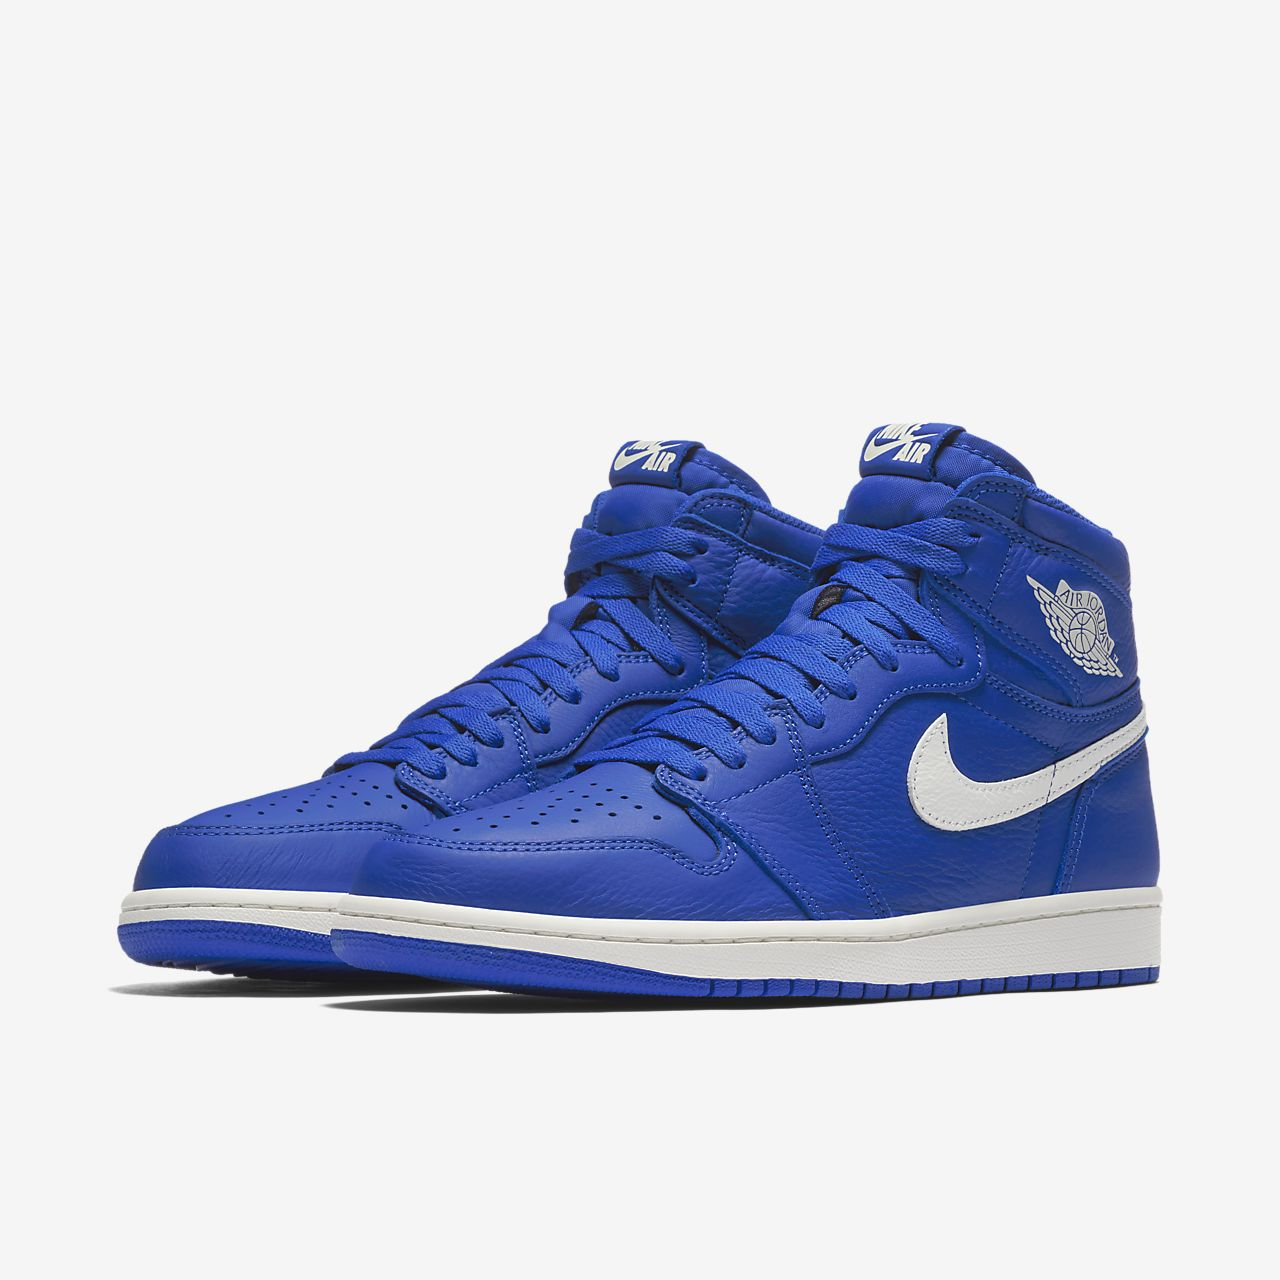 d92233d967fcde Air Jordan 1 Retro High OG Shoe. Nike.com AU